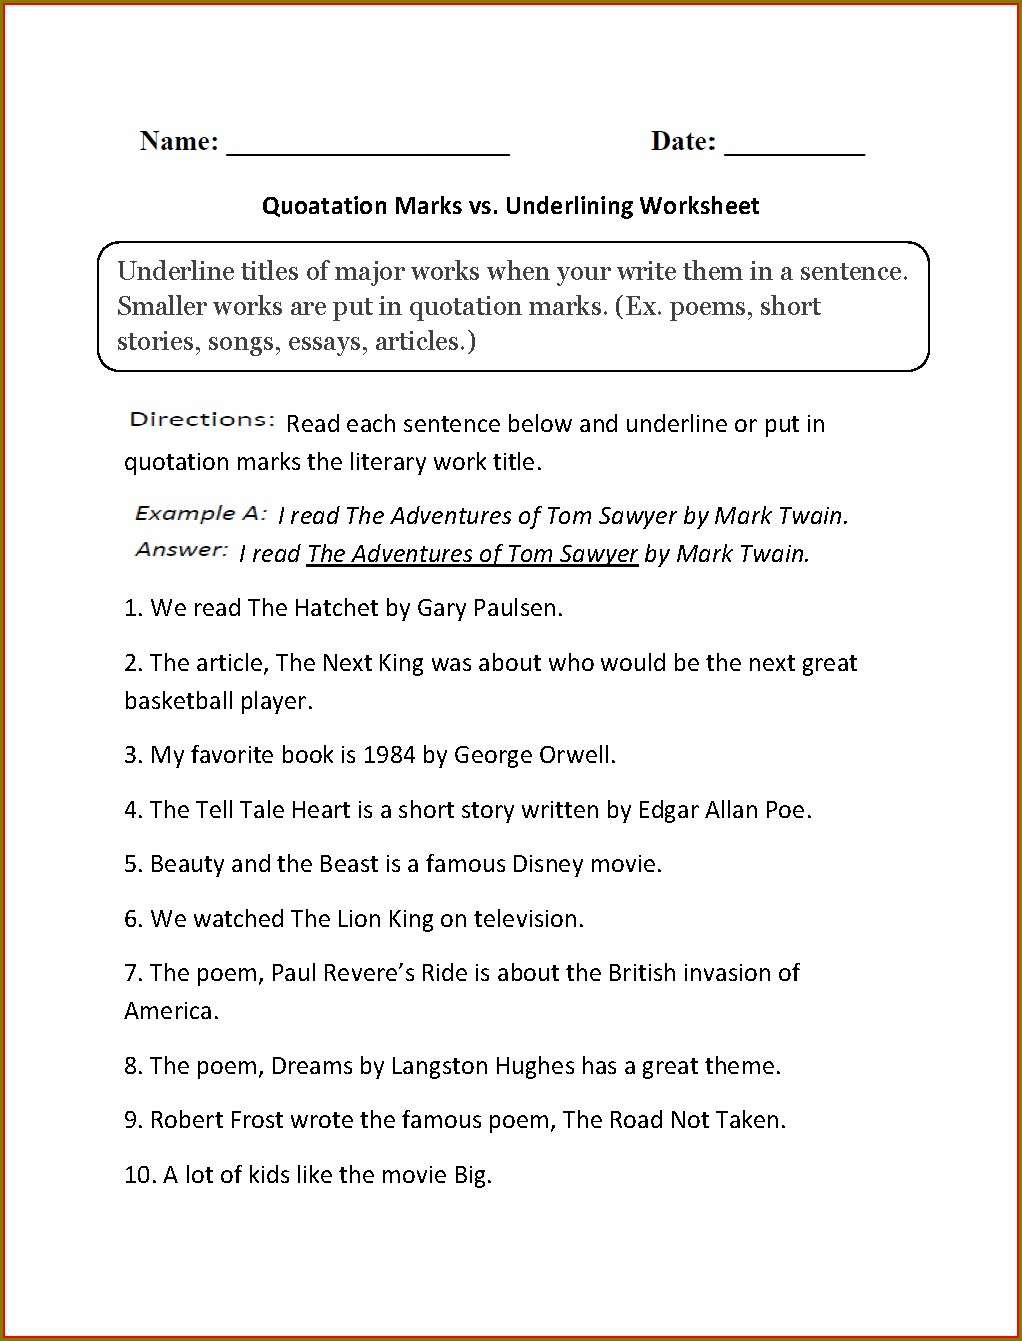 Second Grade Quotation Marks Worksheet